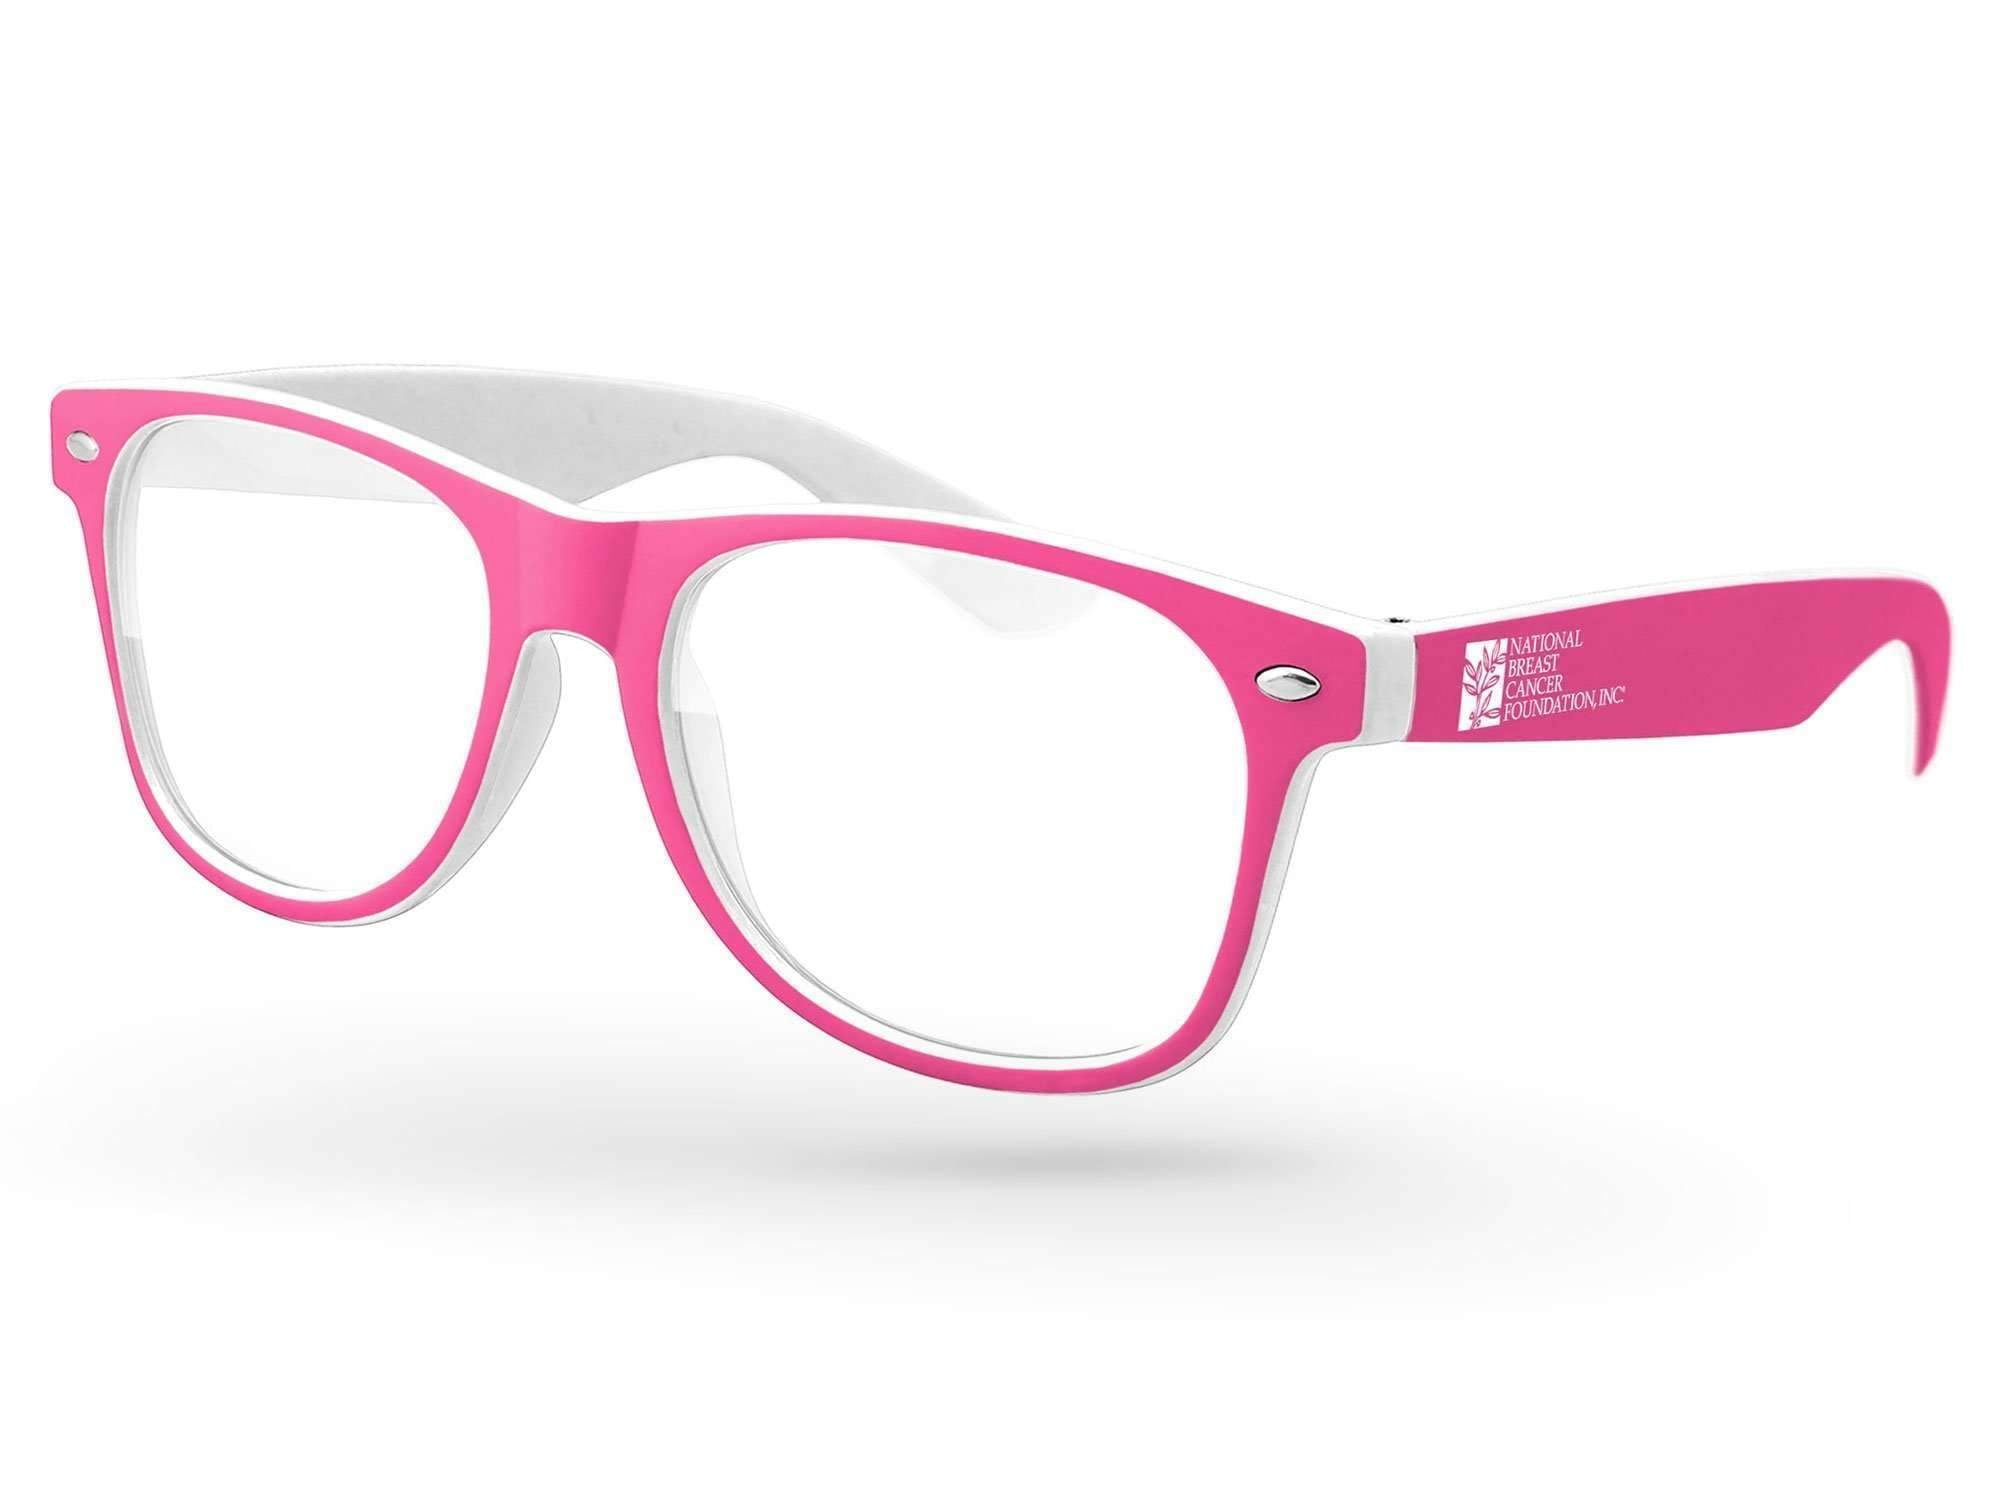 RC011 - Breast Cancer Awareness Retro Promotional Sunglasses w/ 1-color temple imprint